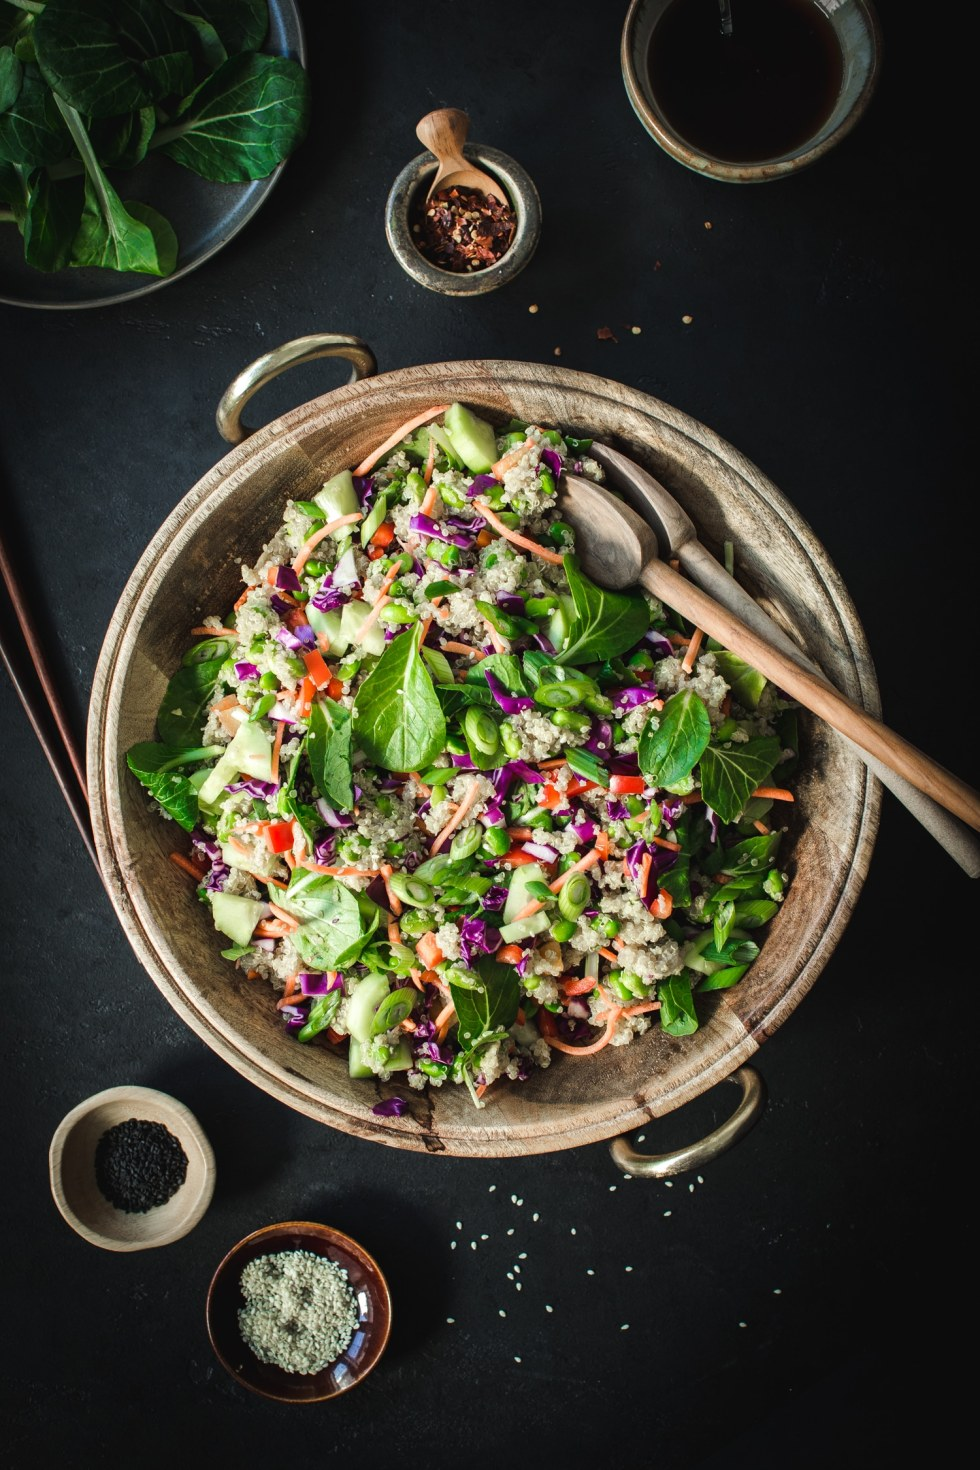 asian sesame quinoa salad in wooden bowl with wooden spoons on black table